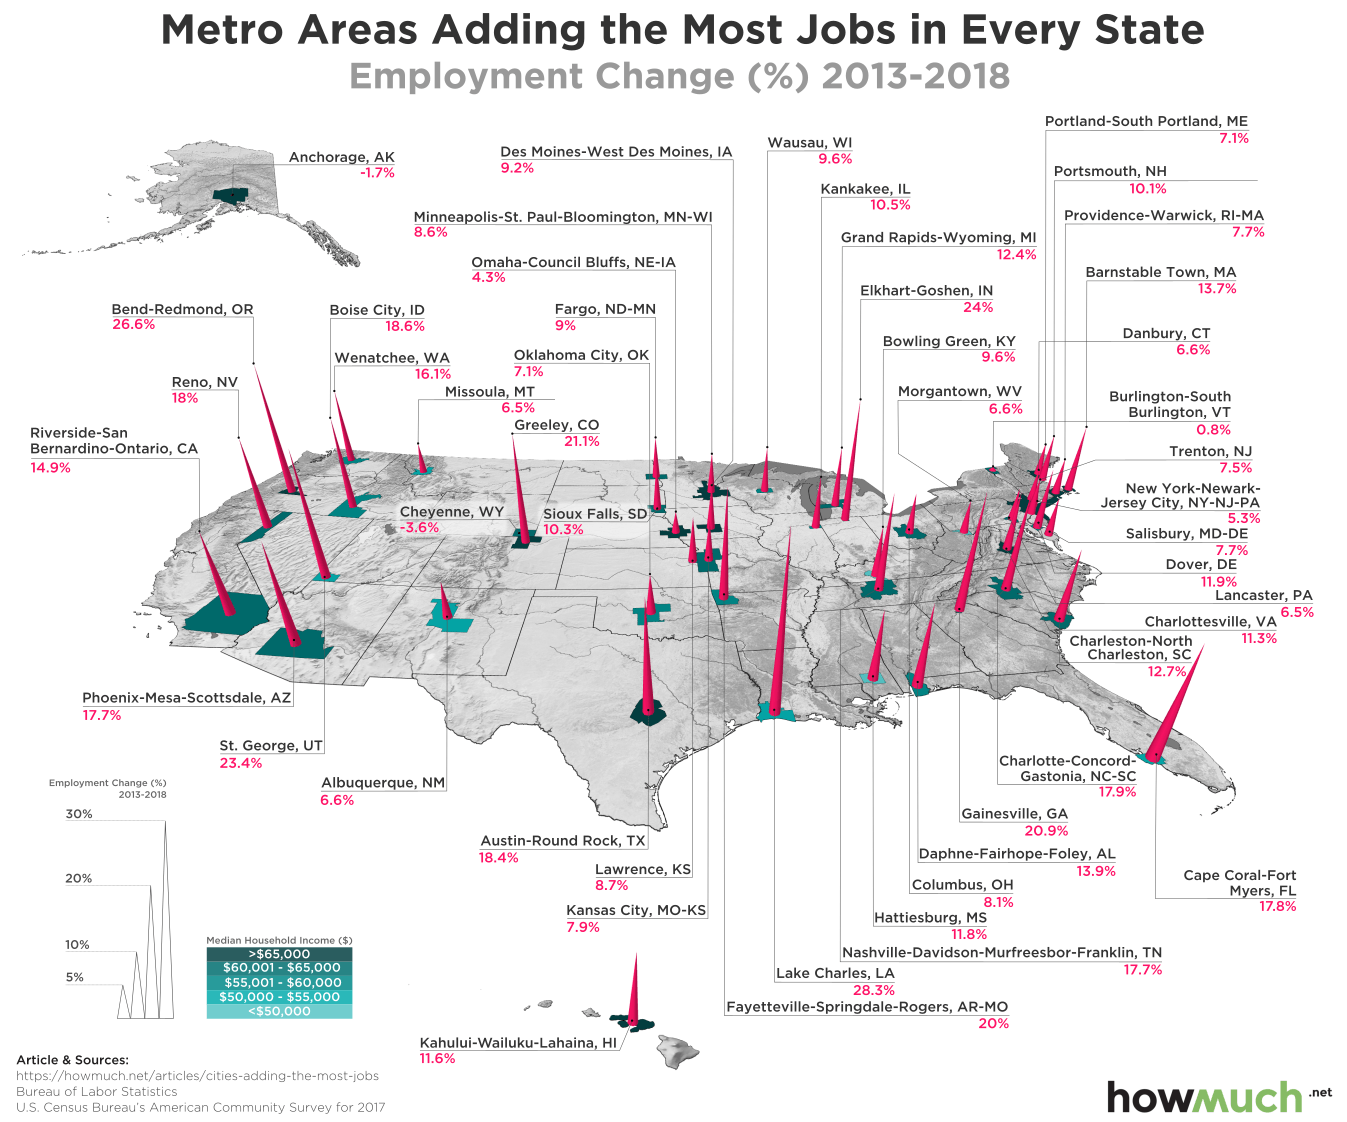 Find Out Which City is Adding the Most Jobs in Your State Kansas City State Map on kansas state restaurants, kansas state government, kansas state calendar, kansas state history, cornell city map, stanford city map, princeton city map, kansas state jobs, kansas state golf, kansas state attractions, kansas state information, ole miss city map, kansas state sports, army city map, clemson city map, kansas state economy, kansas state bathrobe, kansas state parks, st. john's city map, kansas state weather,